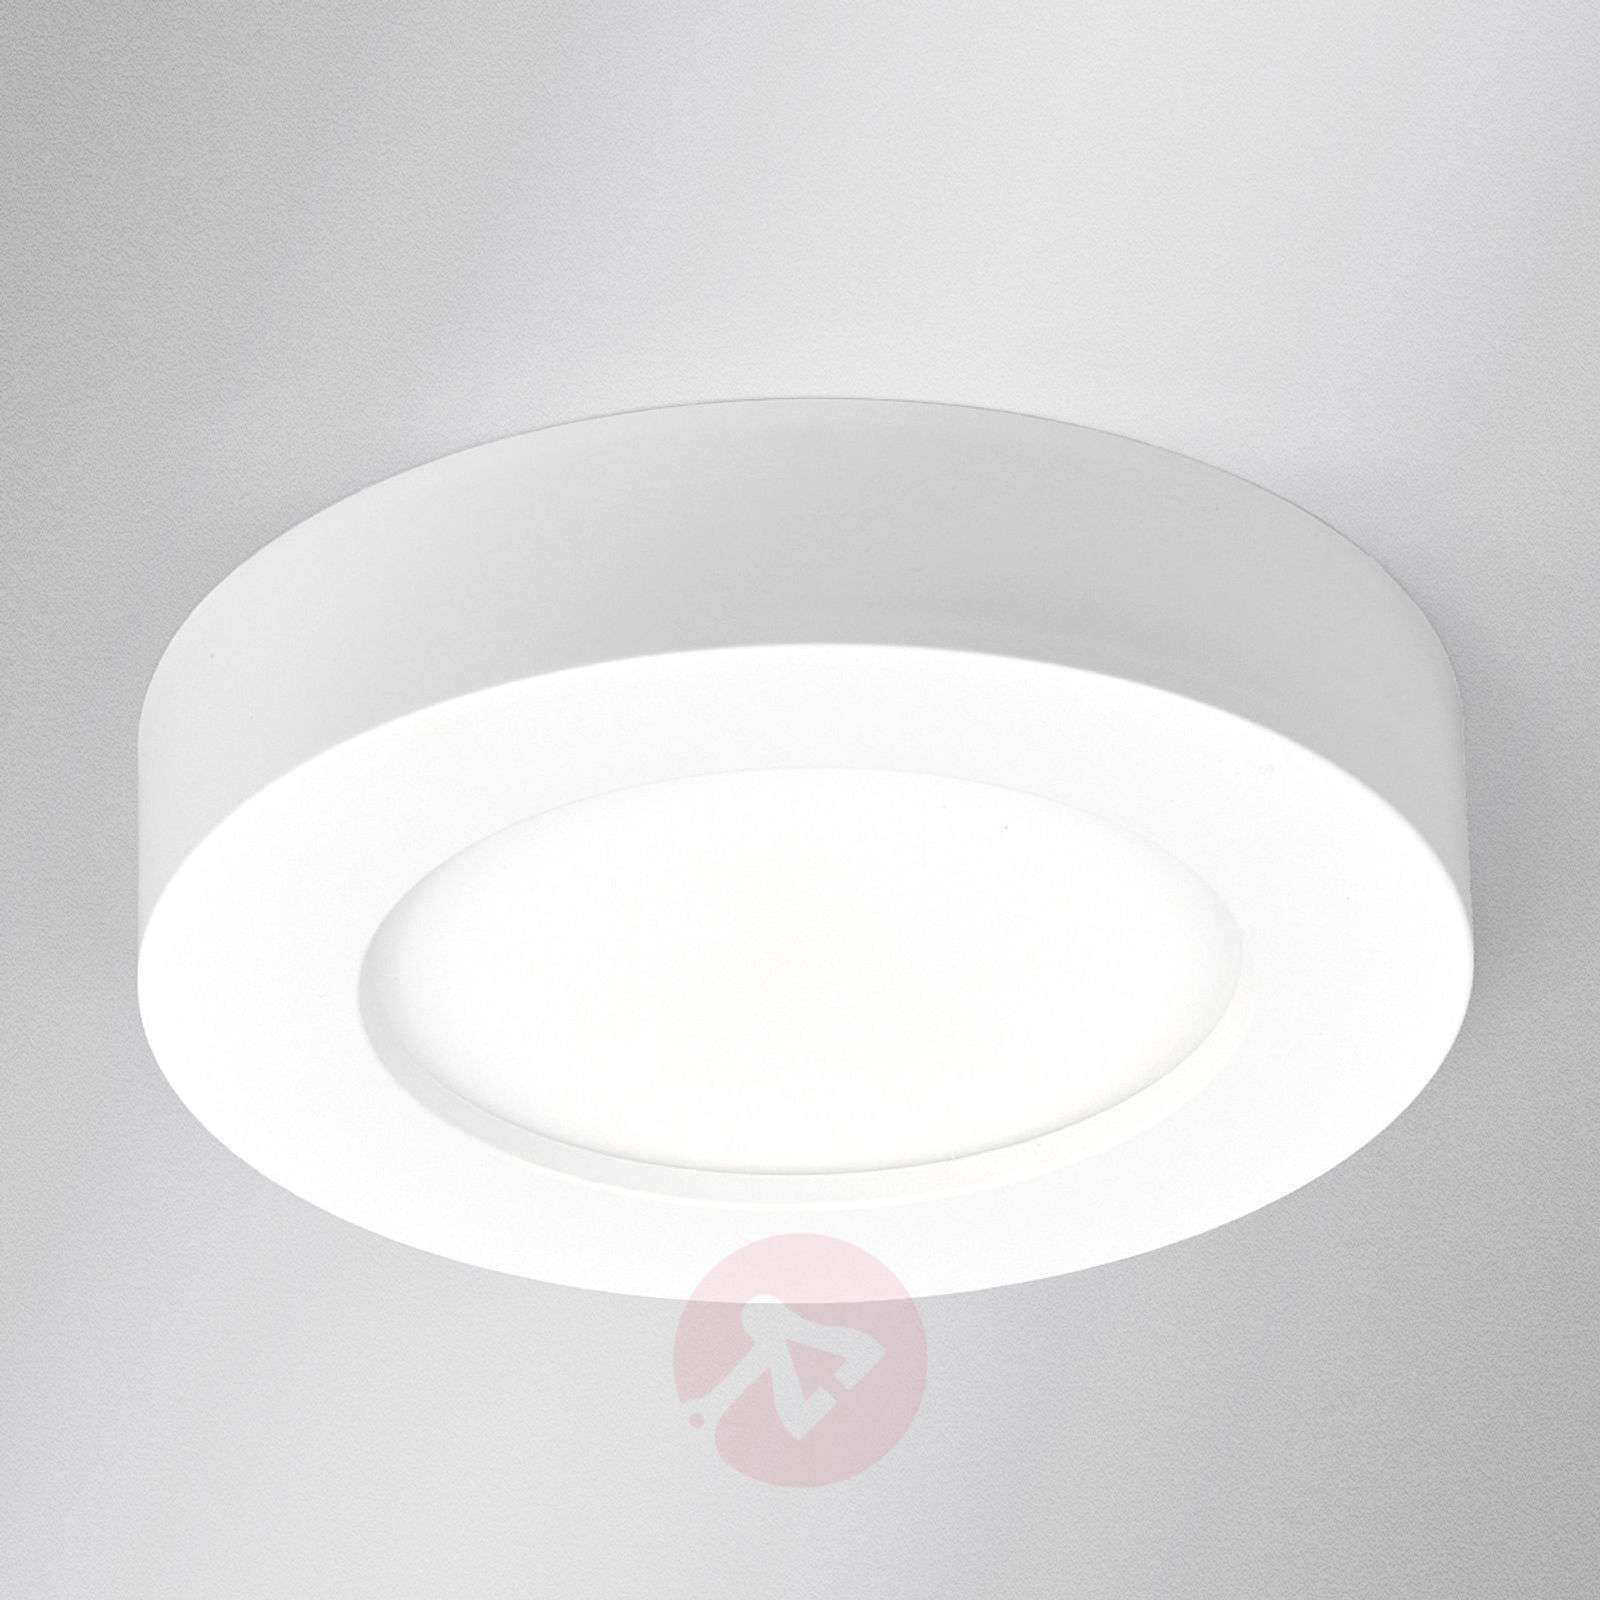 Round LED ceiling lamp Esra for bathrooms-9978020-012